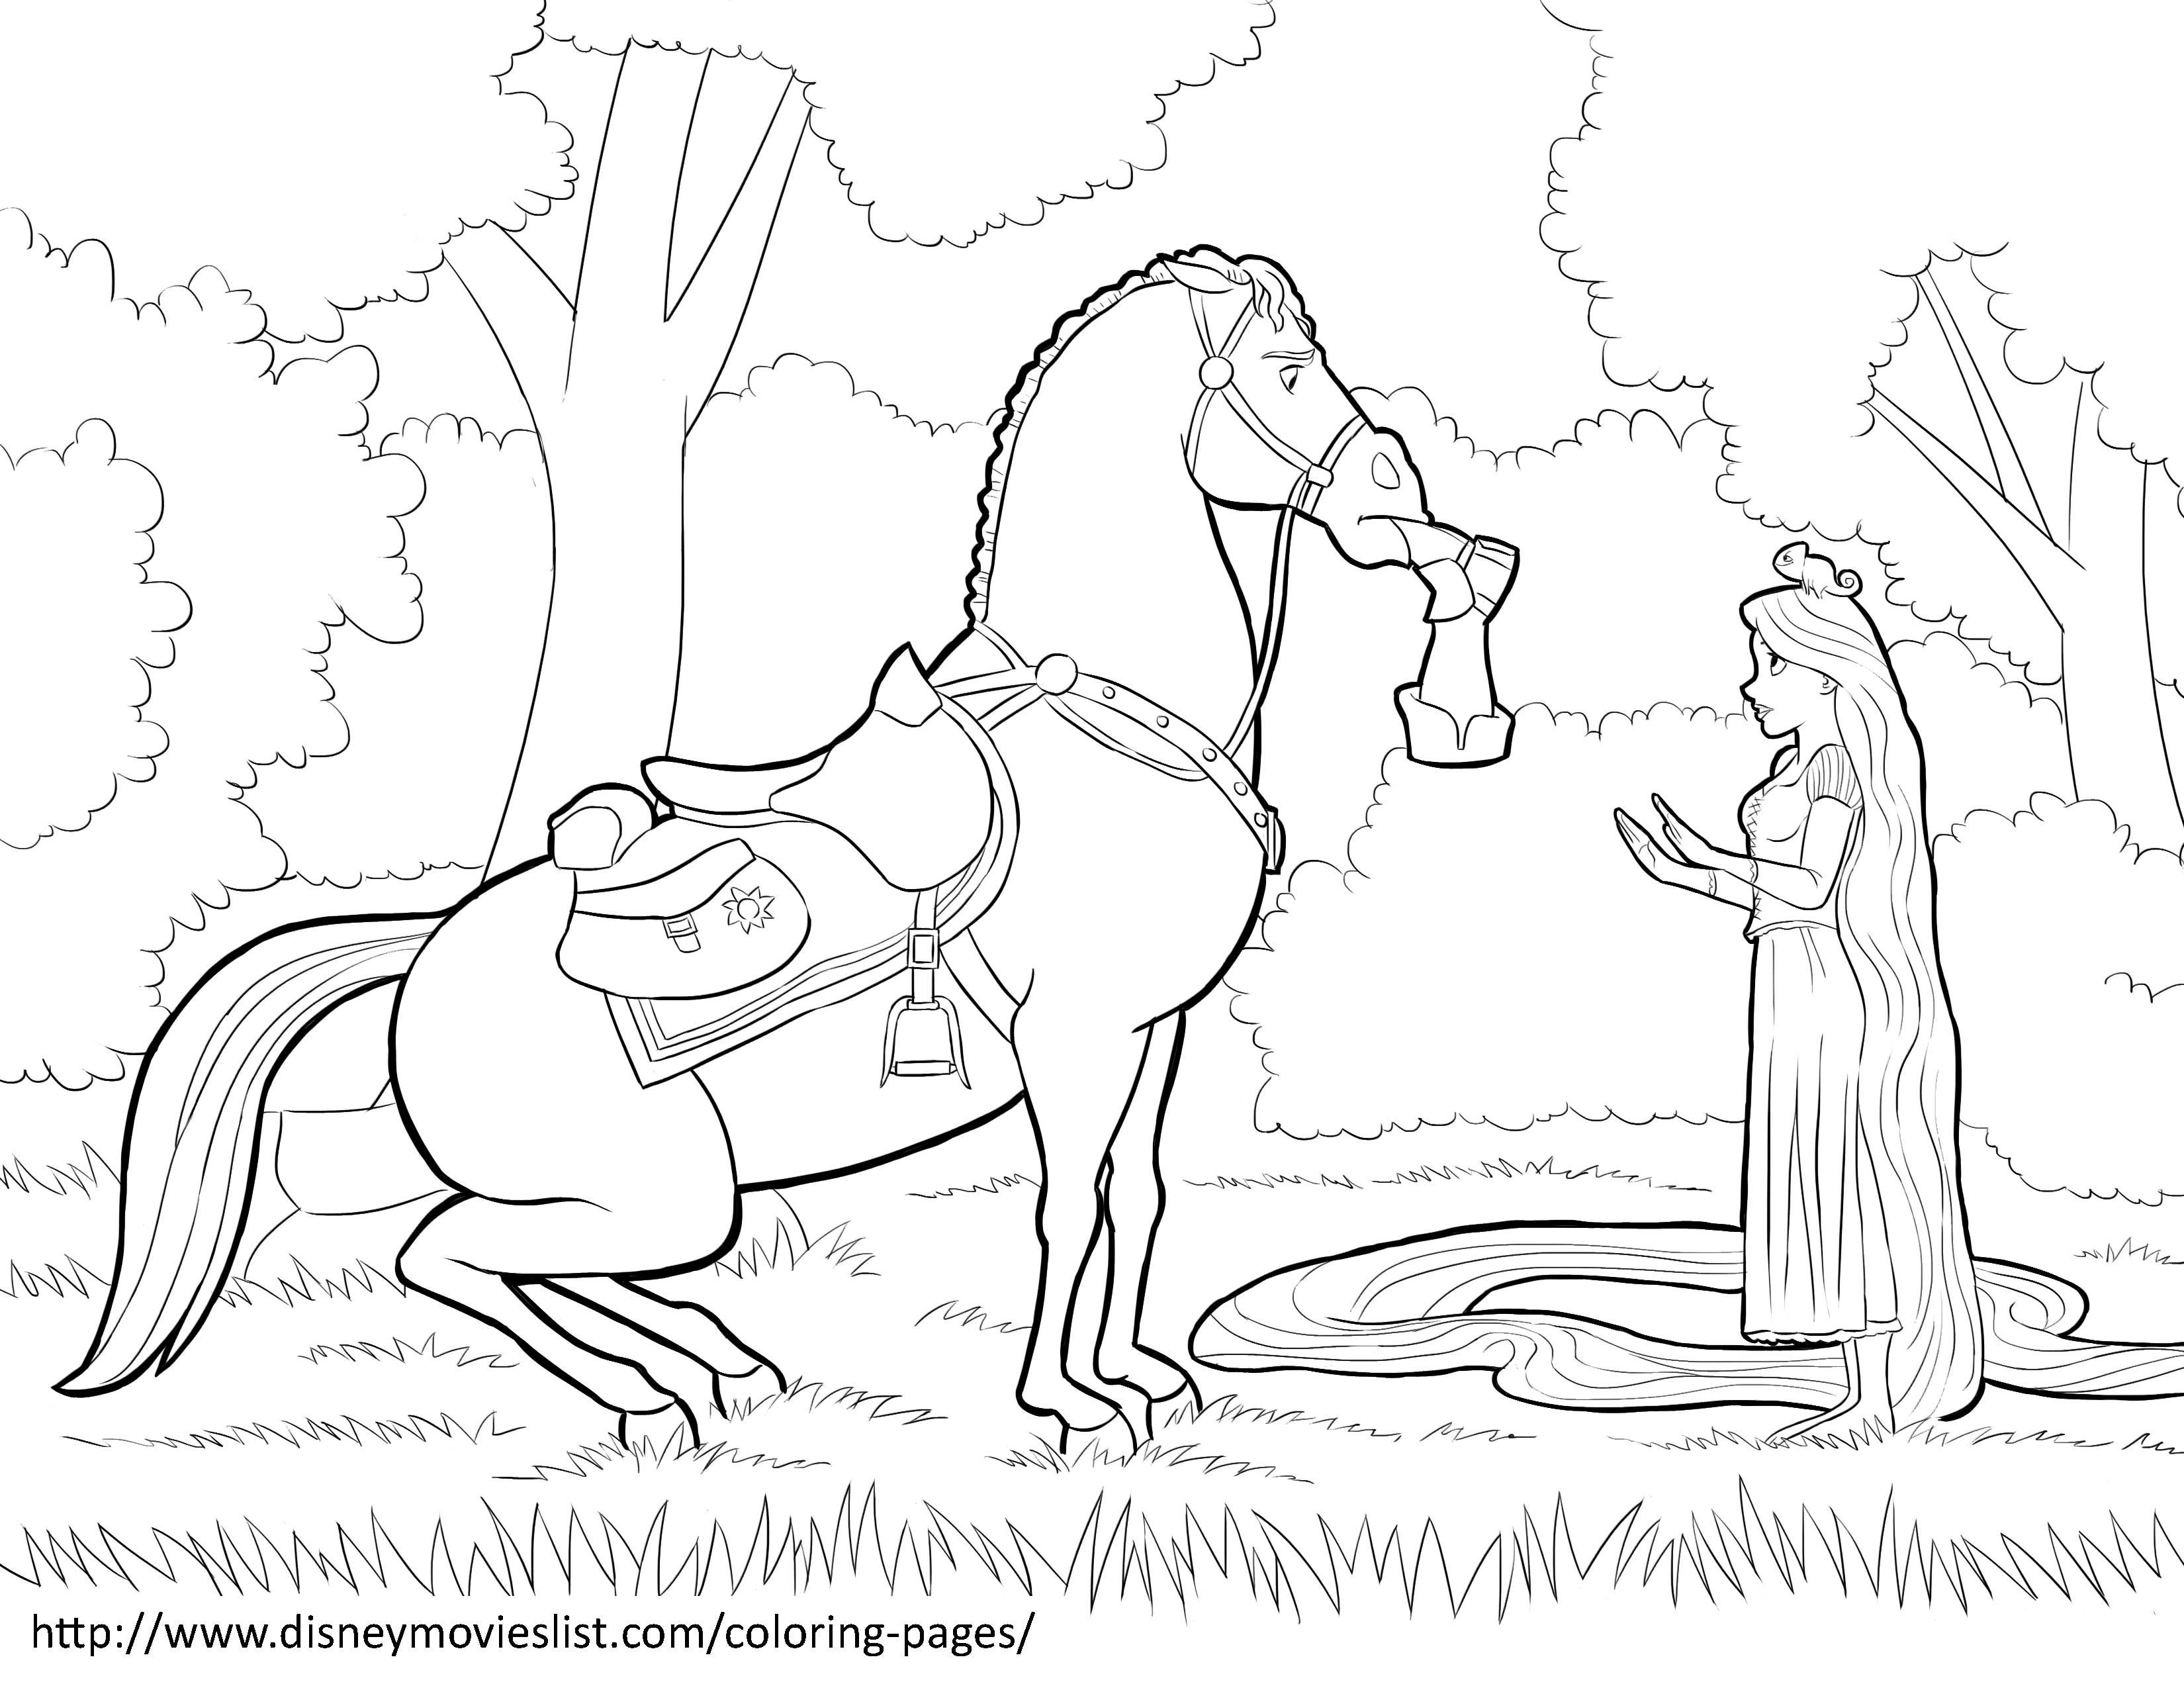 Disney horse coloring pages - A Printable Disney Coloring Page Sheet Titled Rapunzel And Maximus